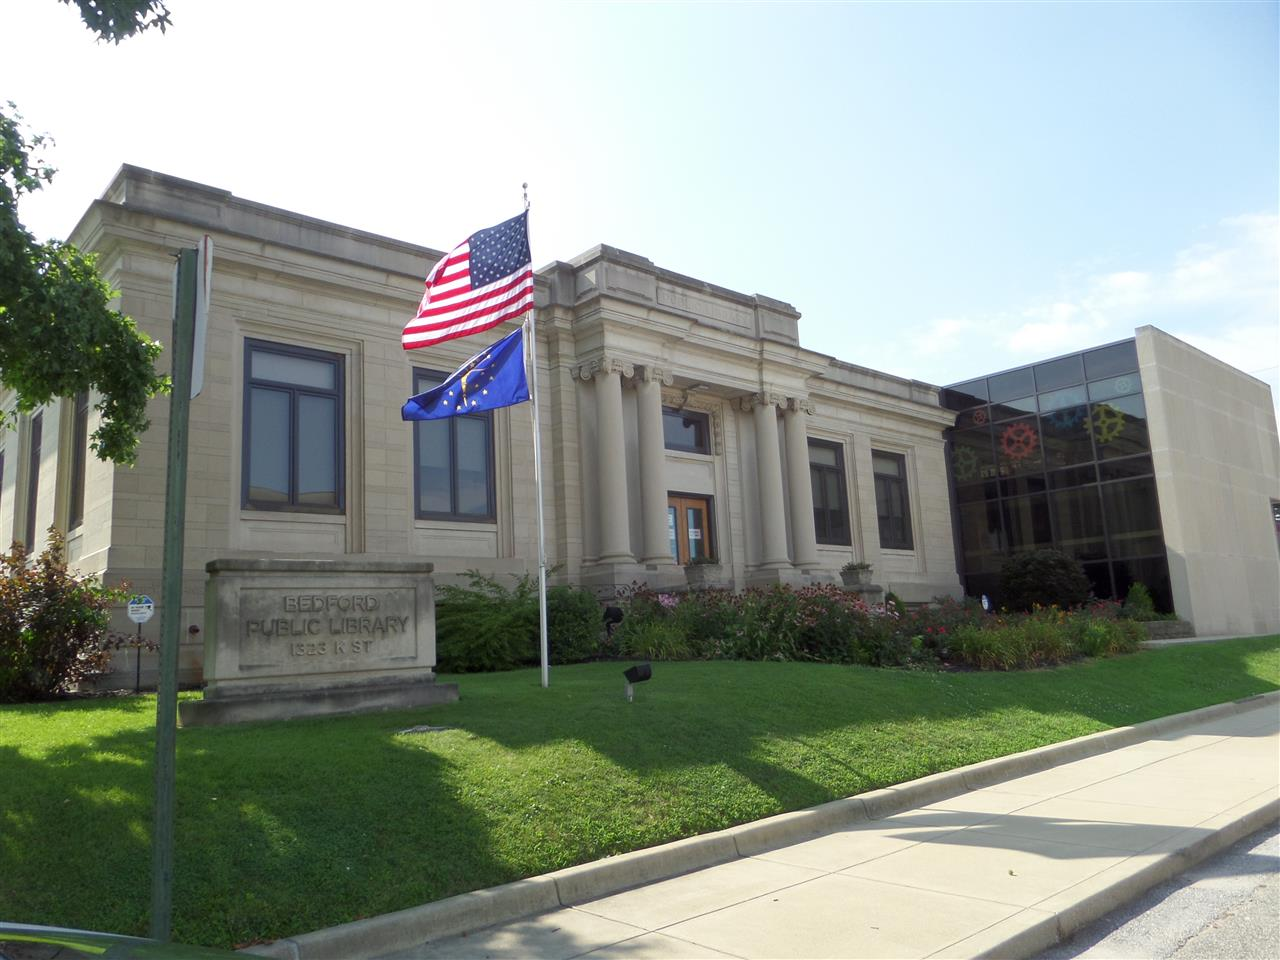 Public Library Bedford, IN Limestone Capital of the World. #leadingrelocal #CarpenterCares